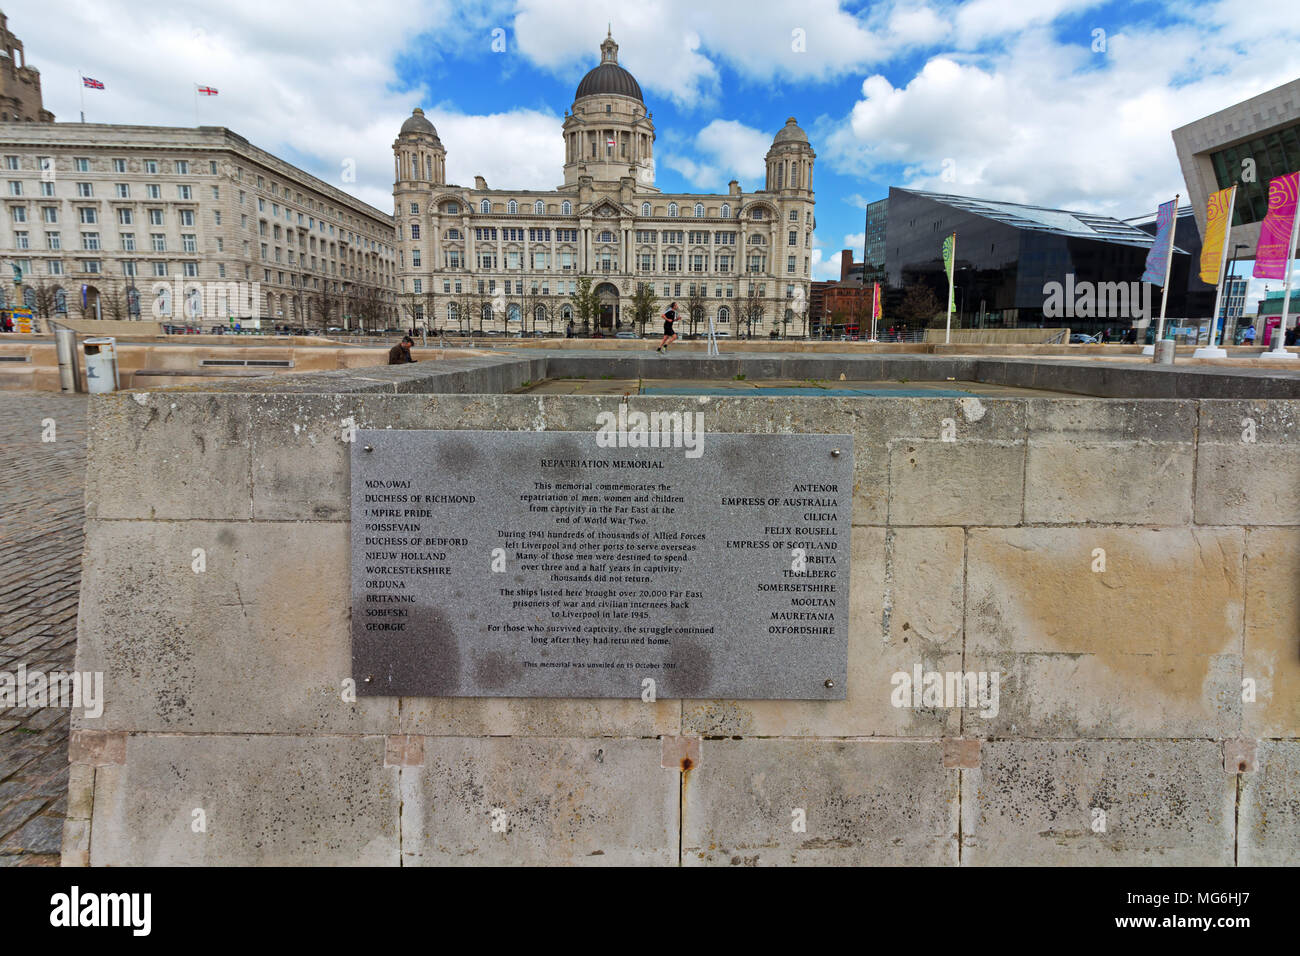 The repatriation memorial Liverpool, stone plaque at the Pier Head dedicated to the memory of those who survived WW2. - Stock Image